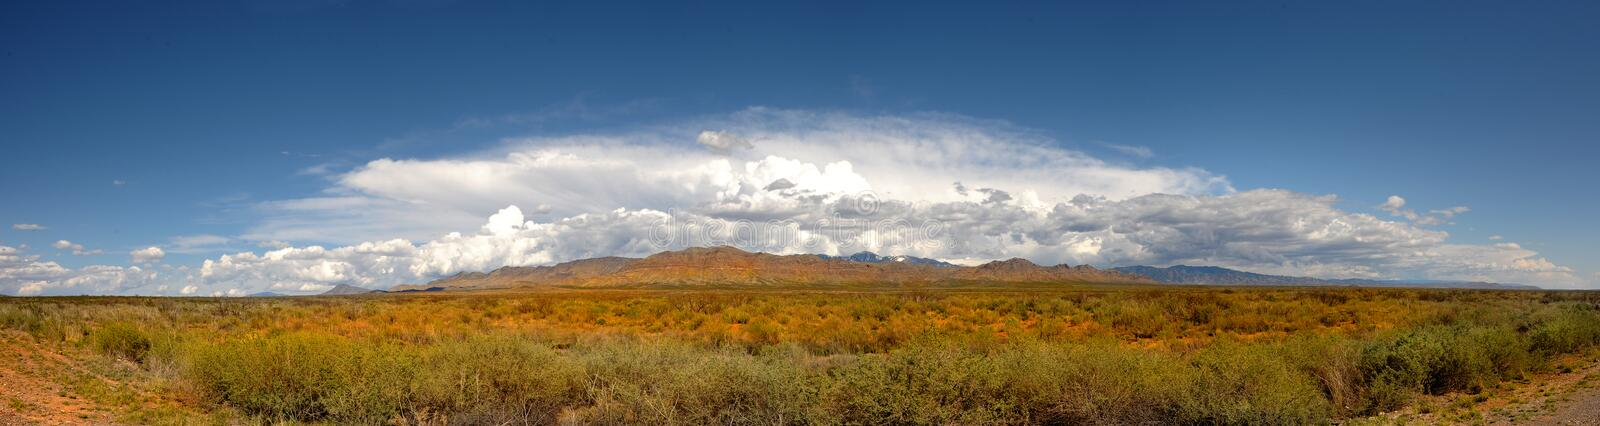 Download New Mexico Pano Royalty Free Stock Photography - Image: 14492257